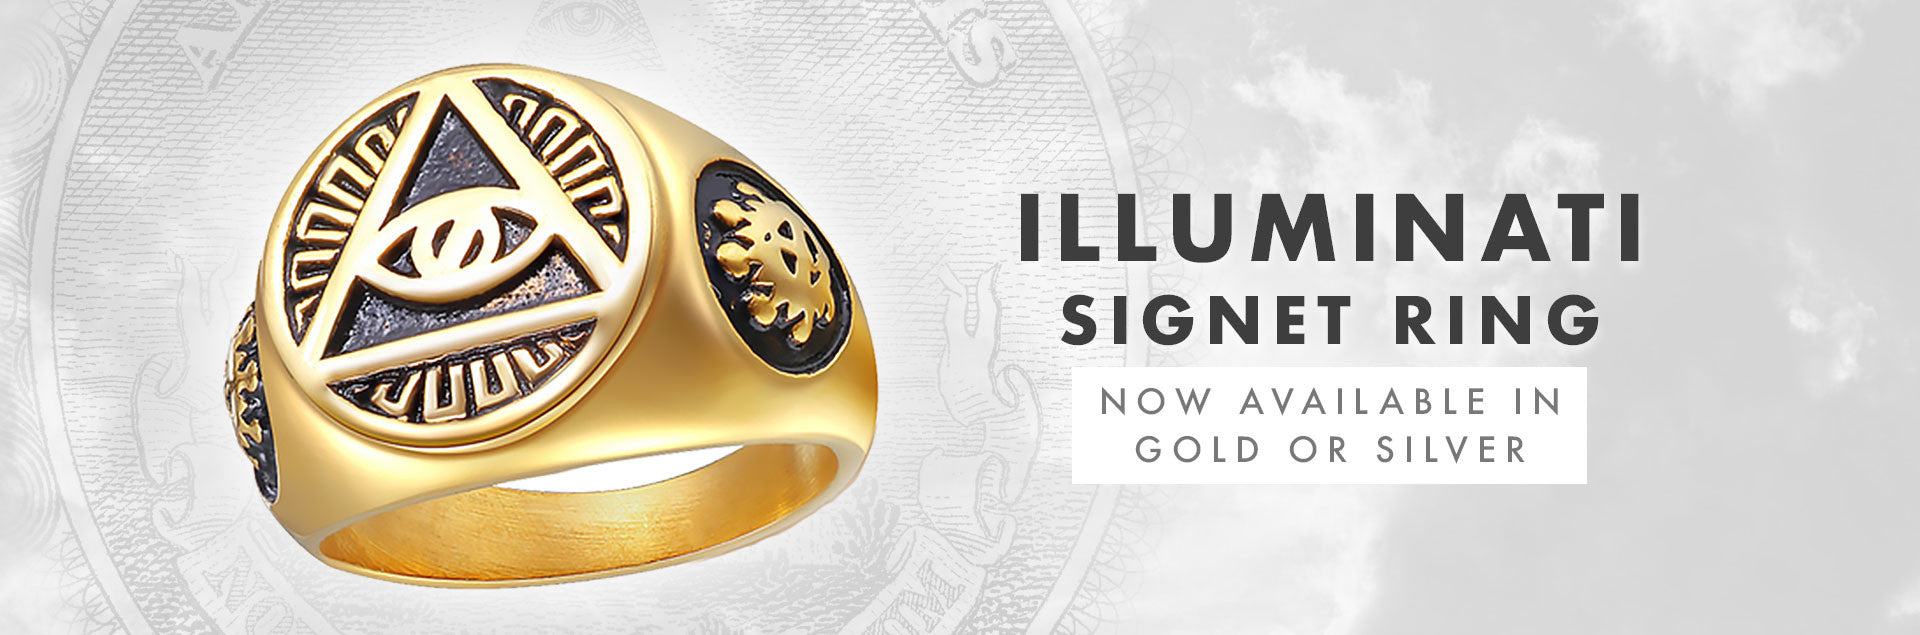 Illuminati Signet Ring